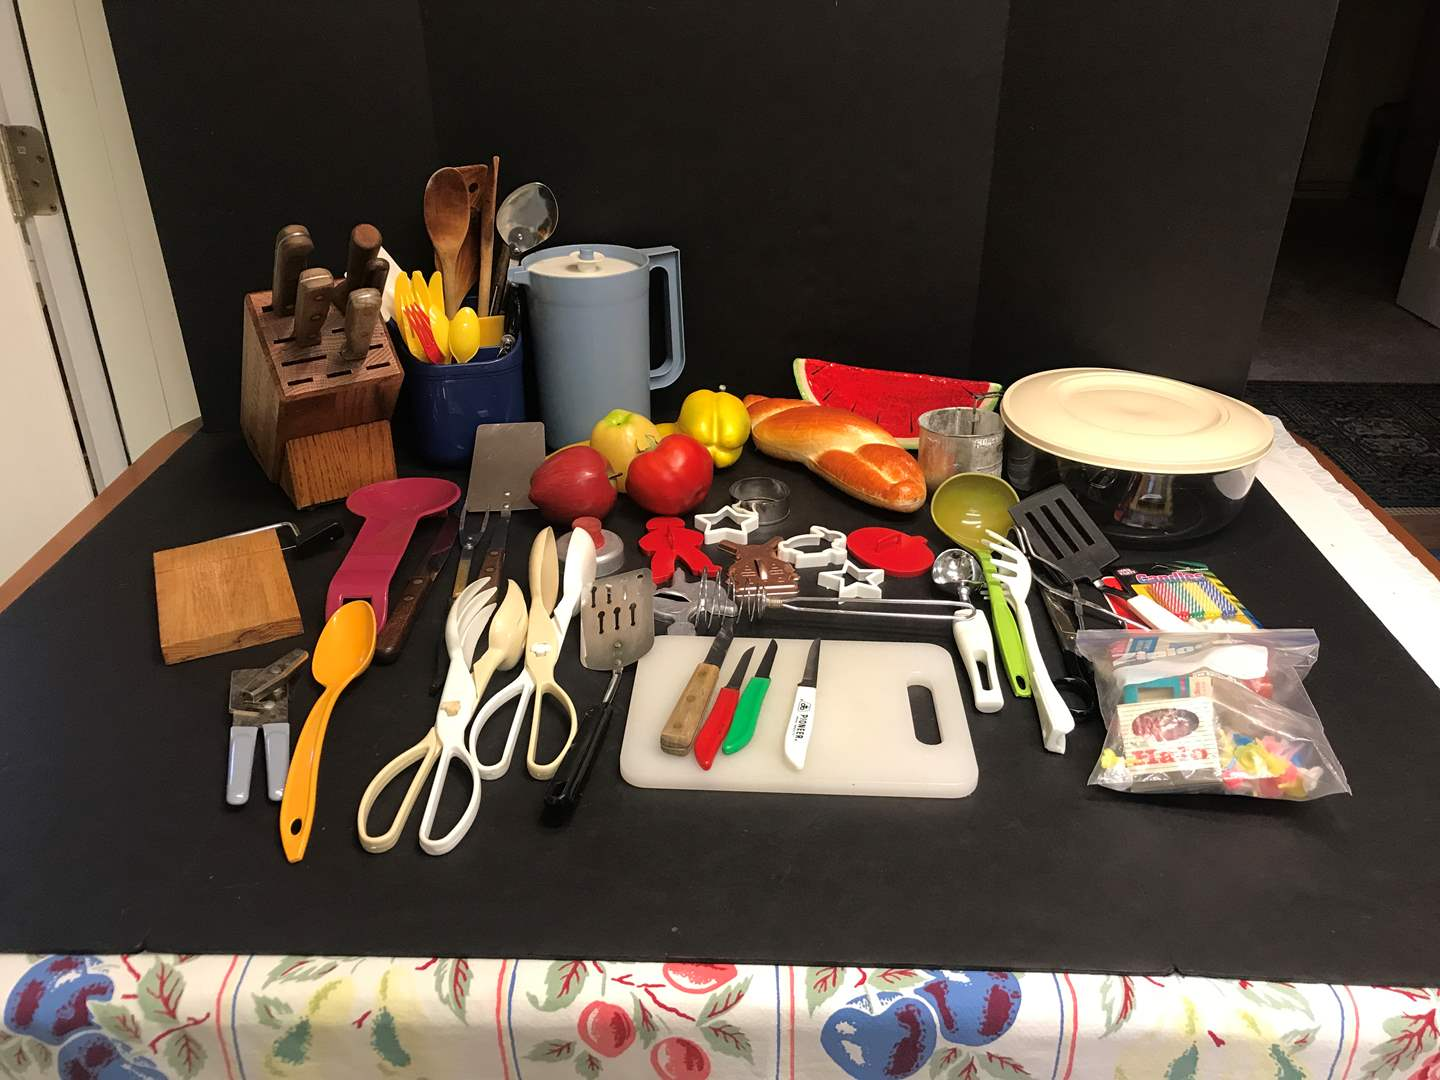 Lot # 83 - Knife Block, Fake Fruit, Cookie Cutters & Plastic Items (main image)